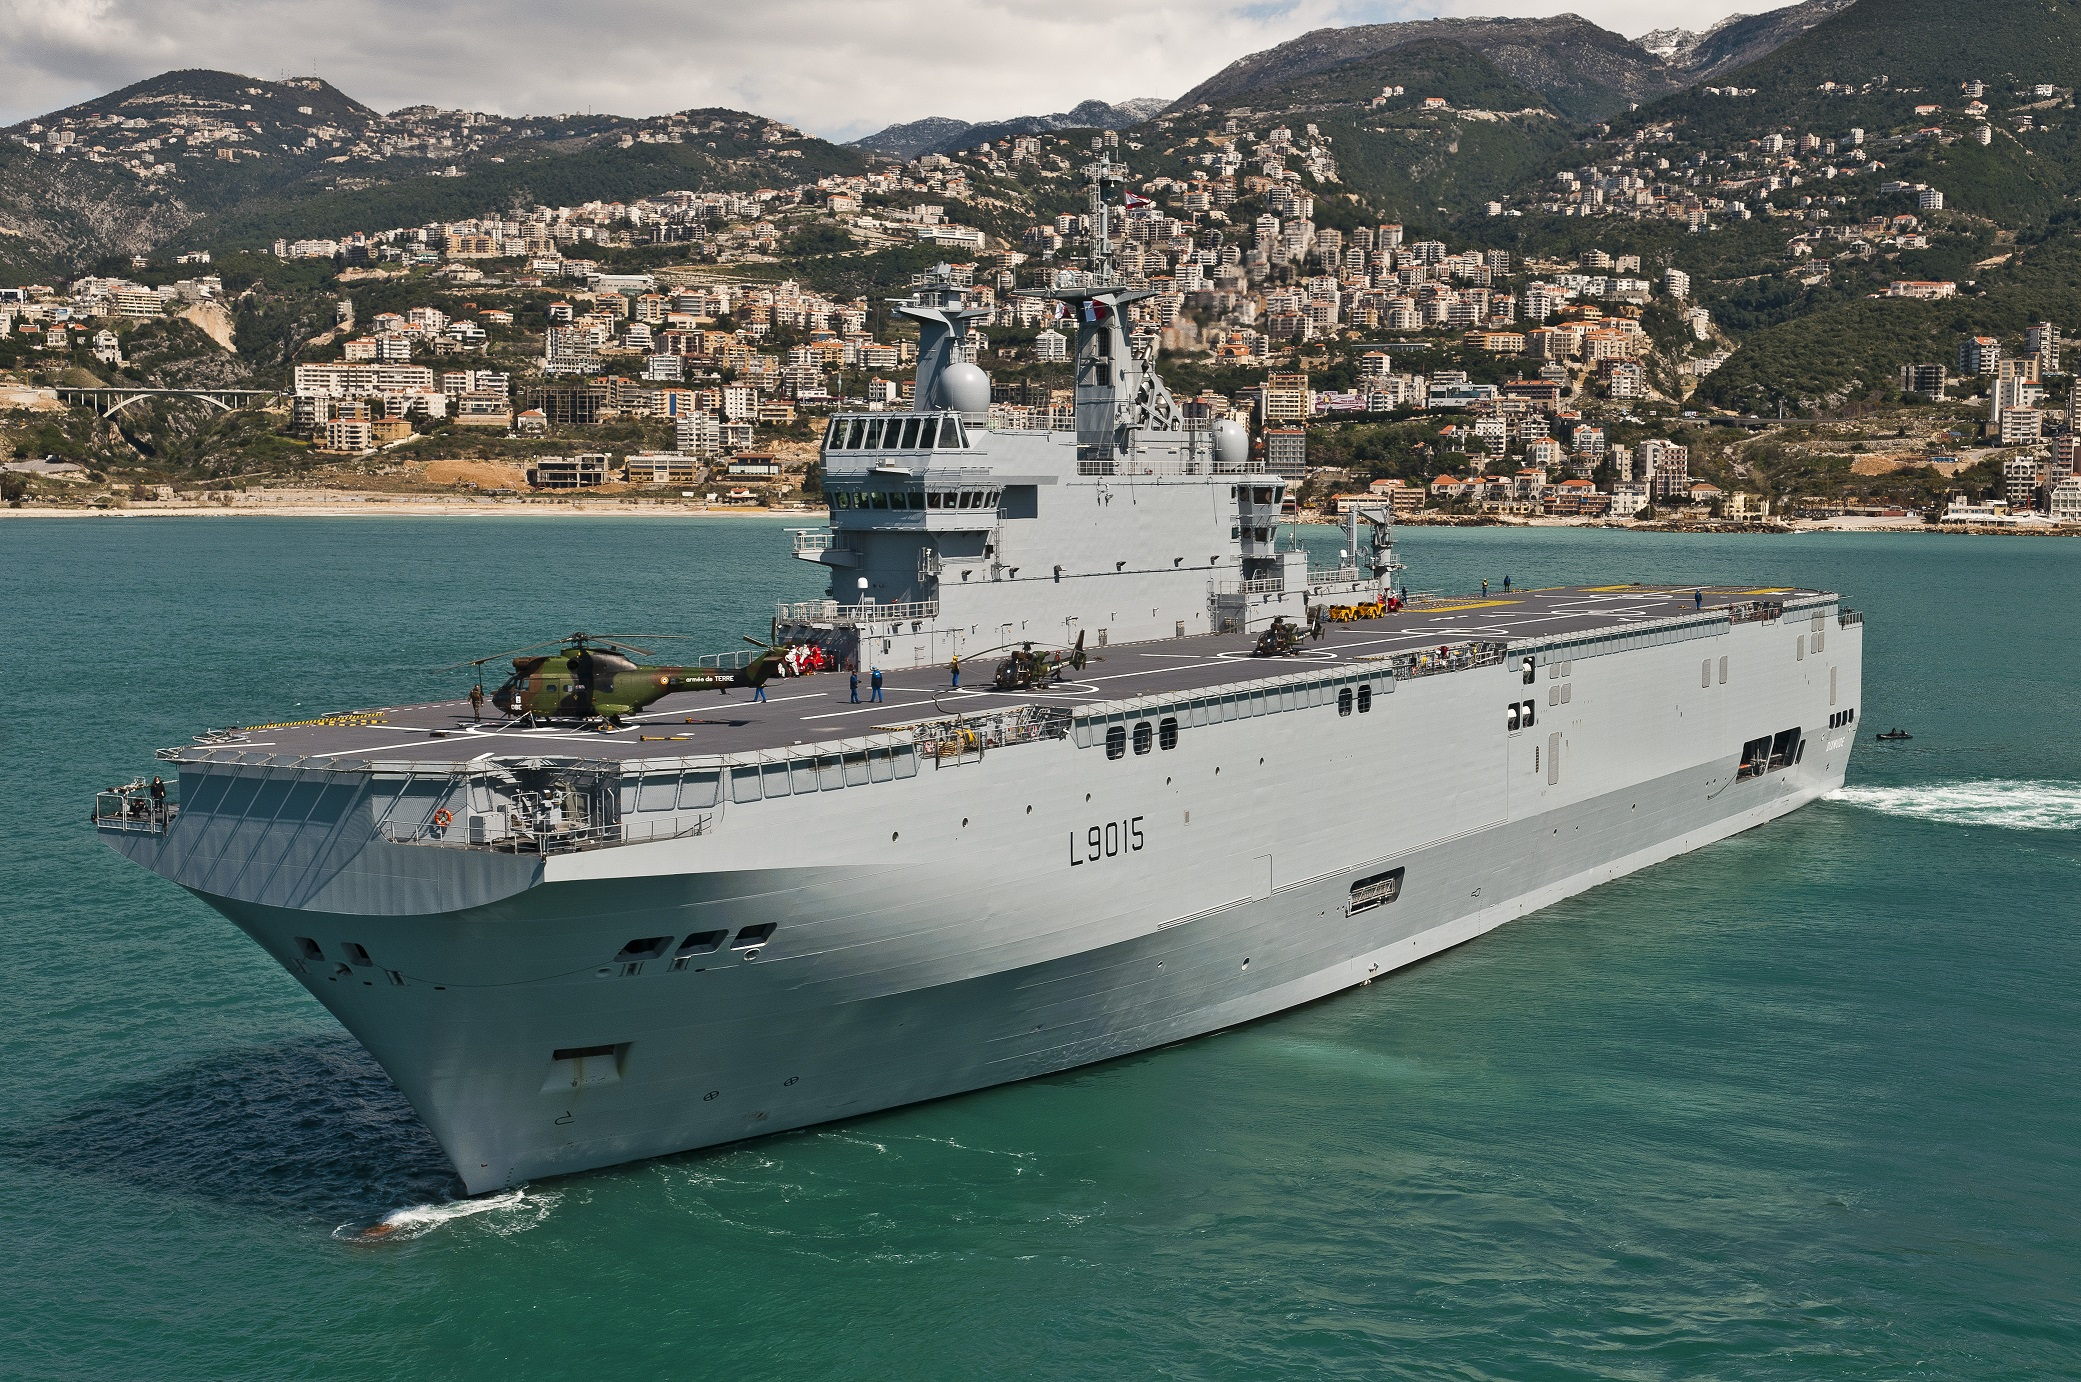 French Mistral-class Dixmude helicopter carrier, very similar in dimensions to proposed Taiwanese carrier.